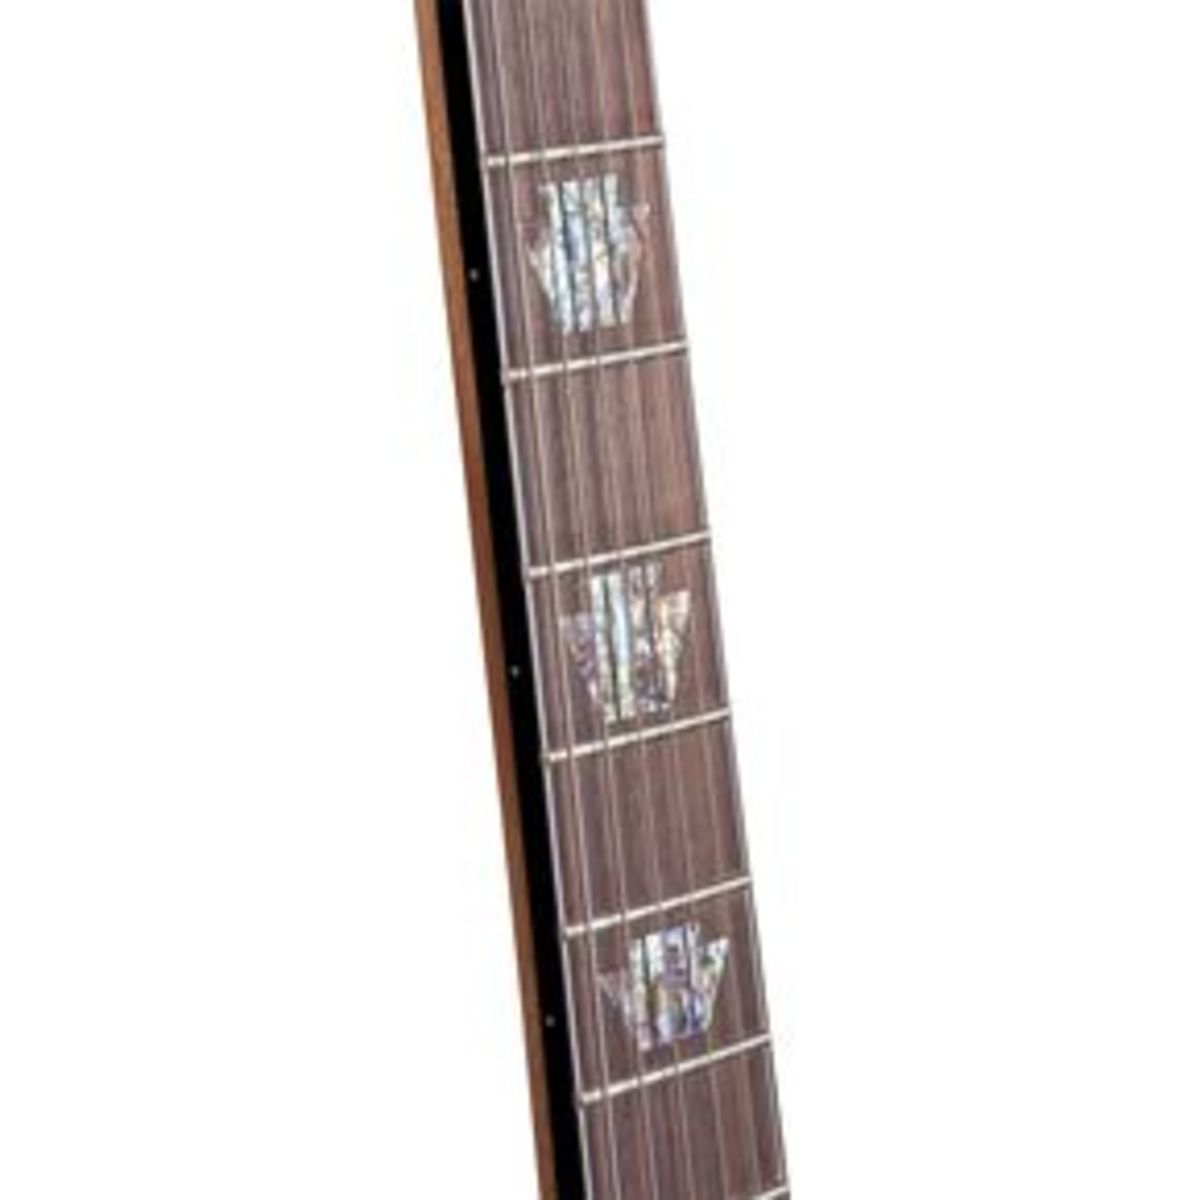 The SK-3 ST has a very thin, super-playable neck with binding around the fretboard edges and a compound fret radius.